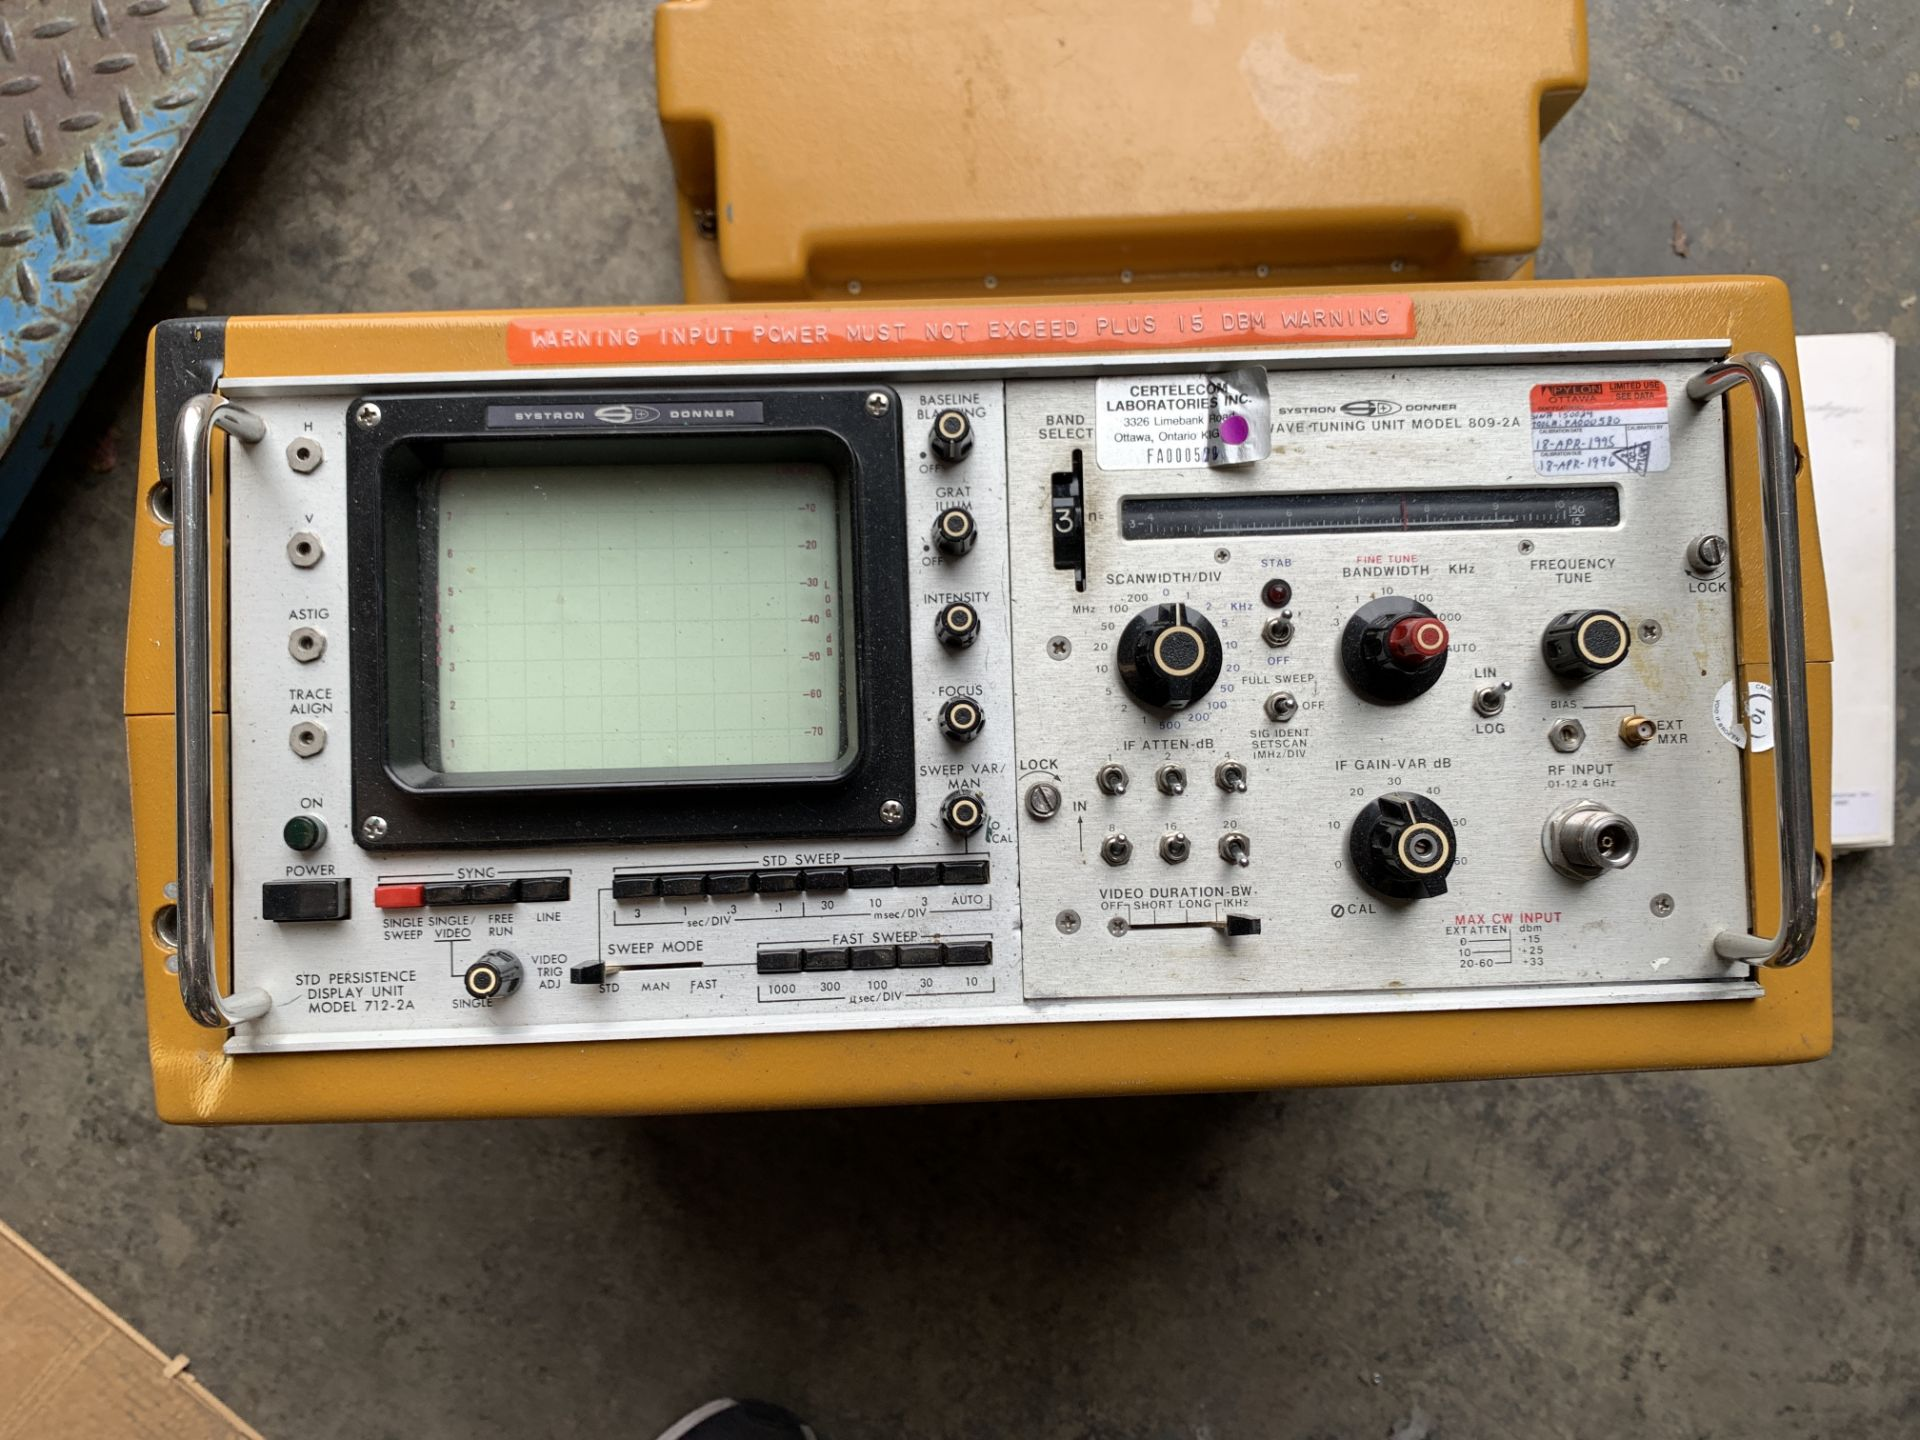 Lot 206 - Systron Donner Microwave Tuning Unit Model 809-2A, Ship from or pick up in Los Angeles